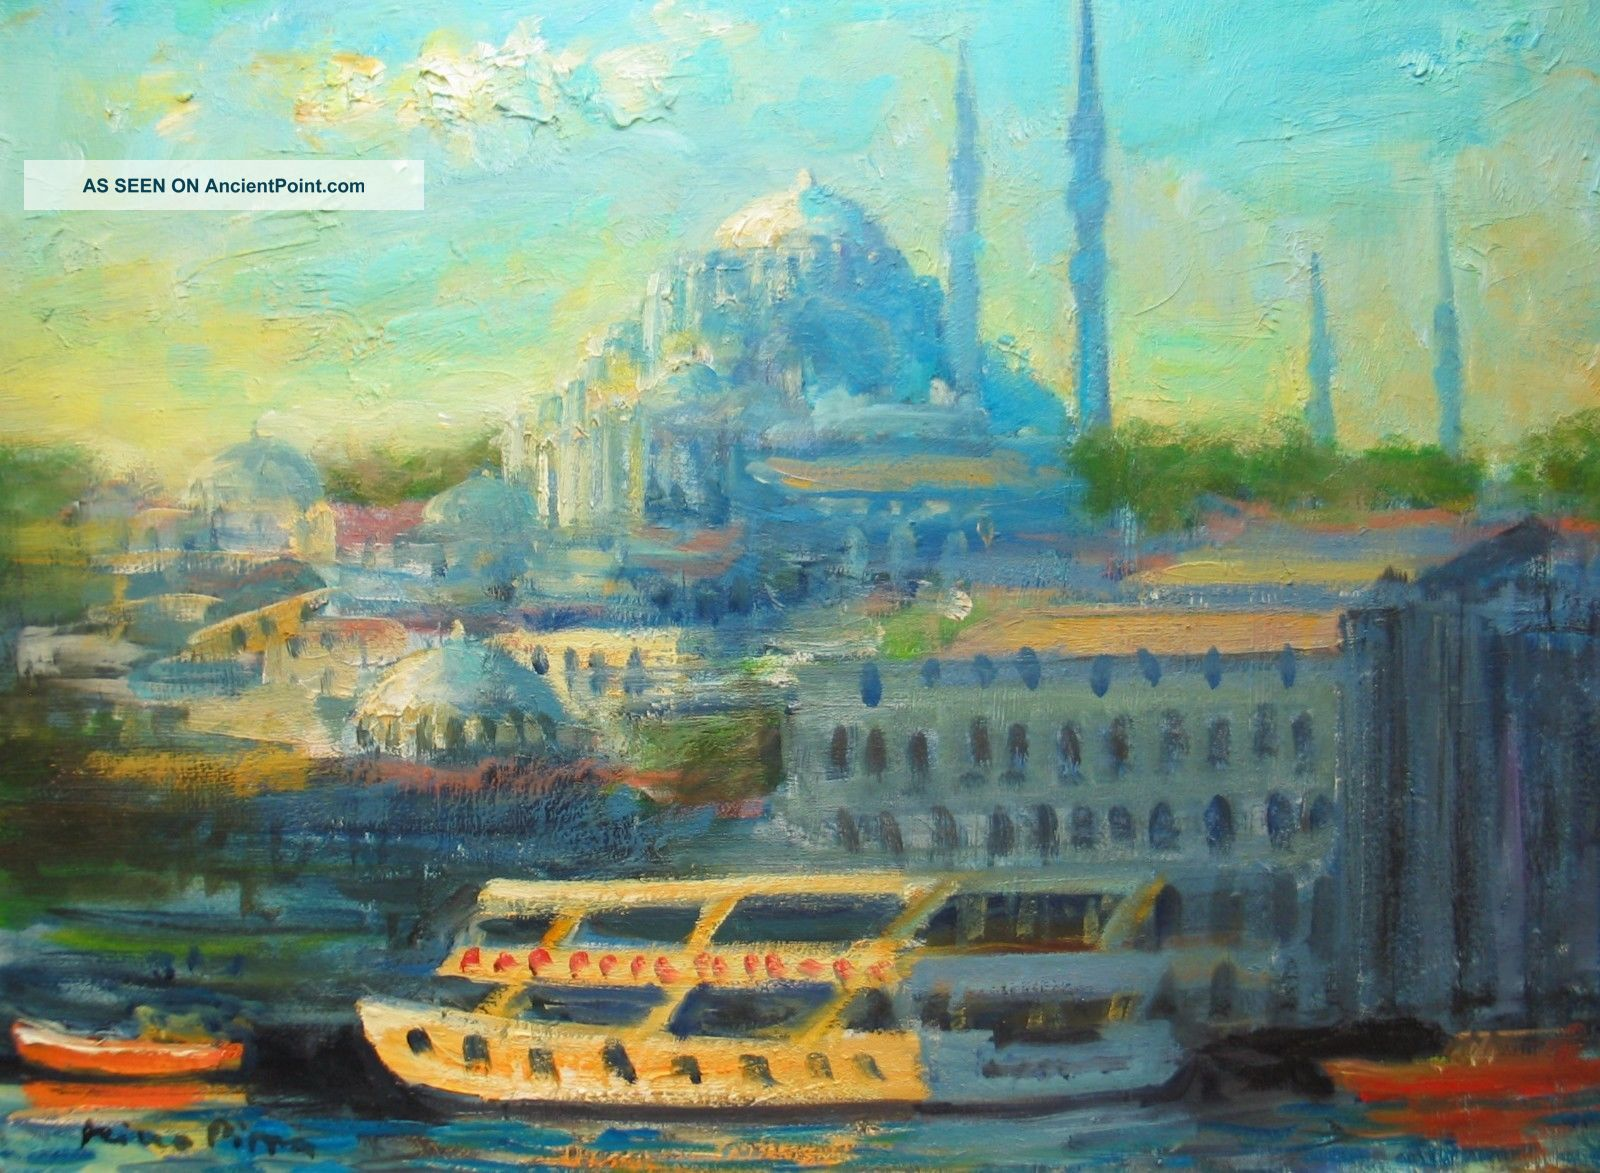 Istanbul Painting By Well Listed American Impressionist Orientalist Other Maritime Antiques photo